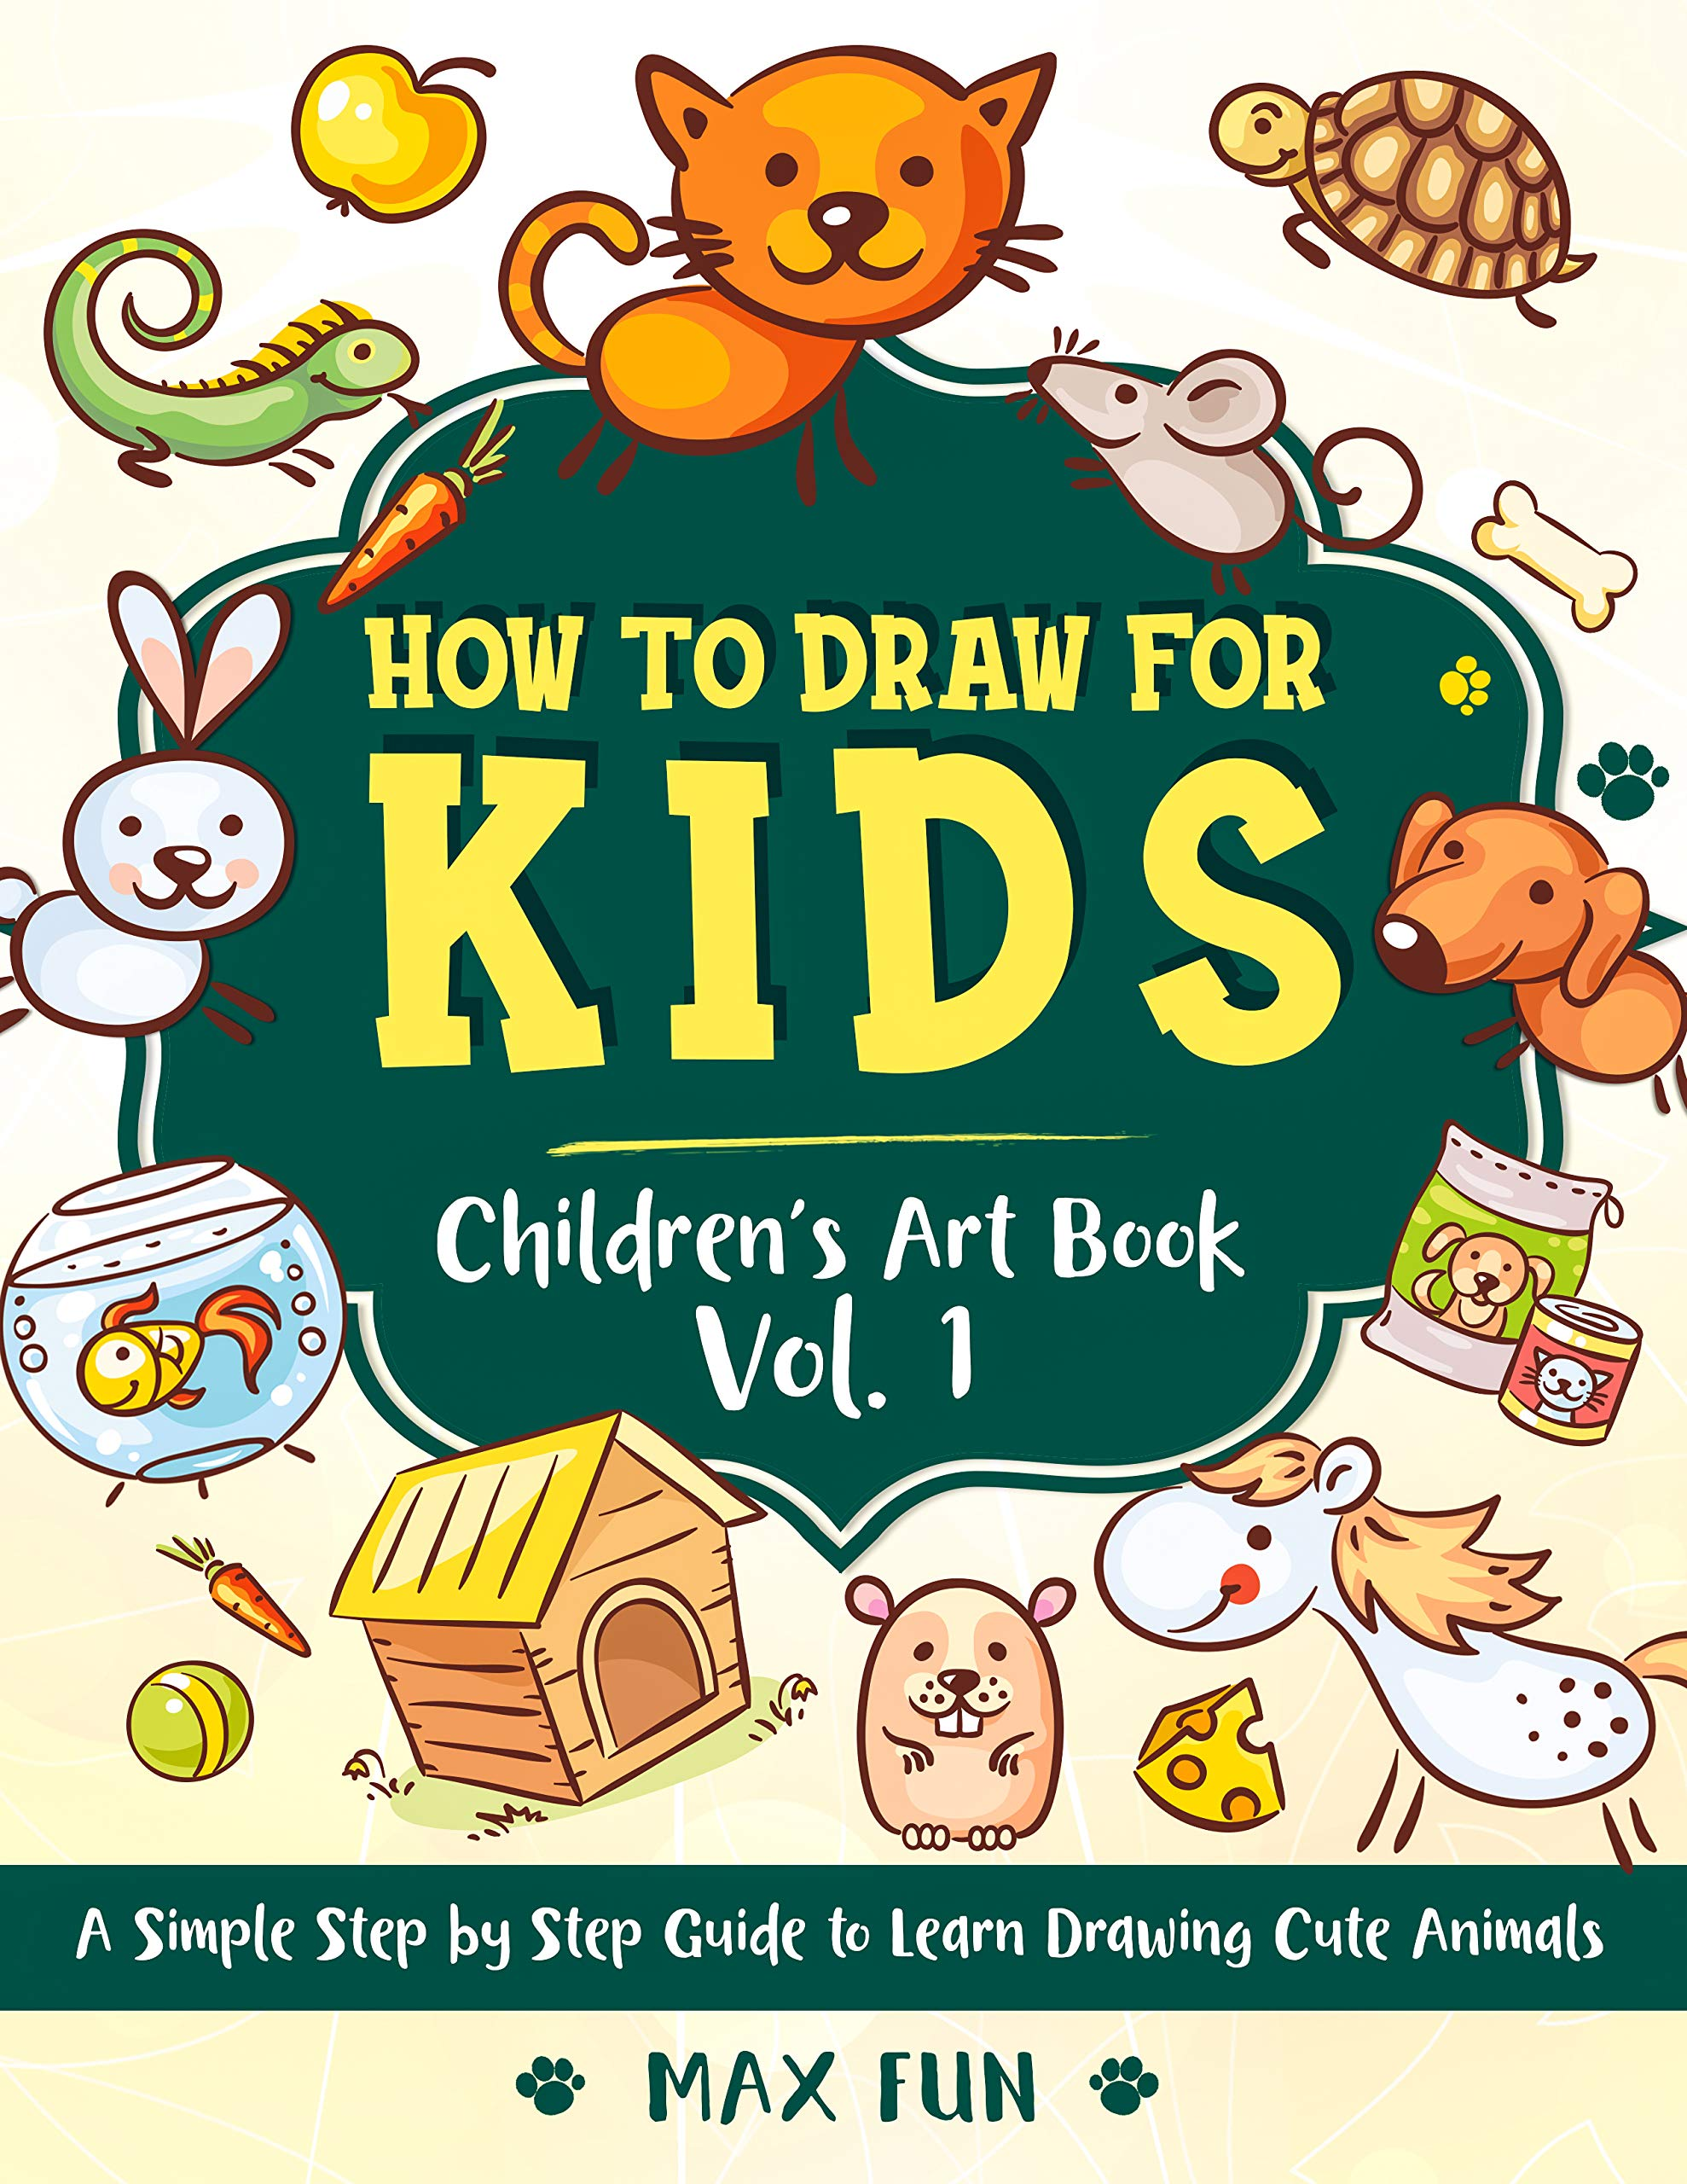 How to Draw for Kids: A Simple Step by Step Guide to Learn Drawing Cute Animals. (Children's Art Book Vol. 1) (Children's Drawing Books)